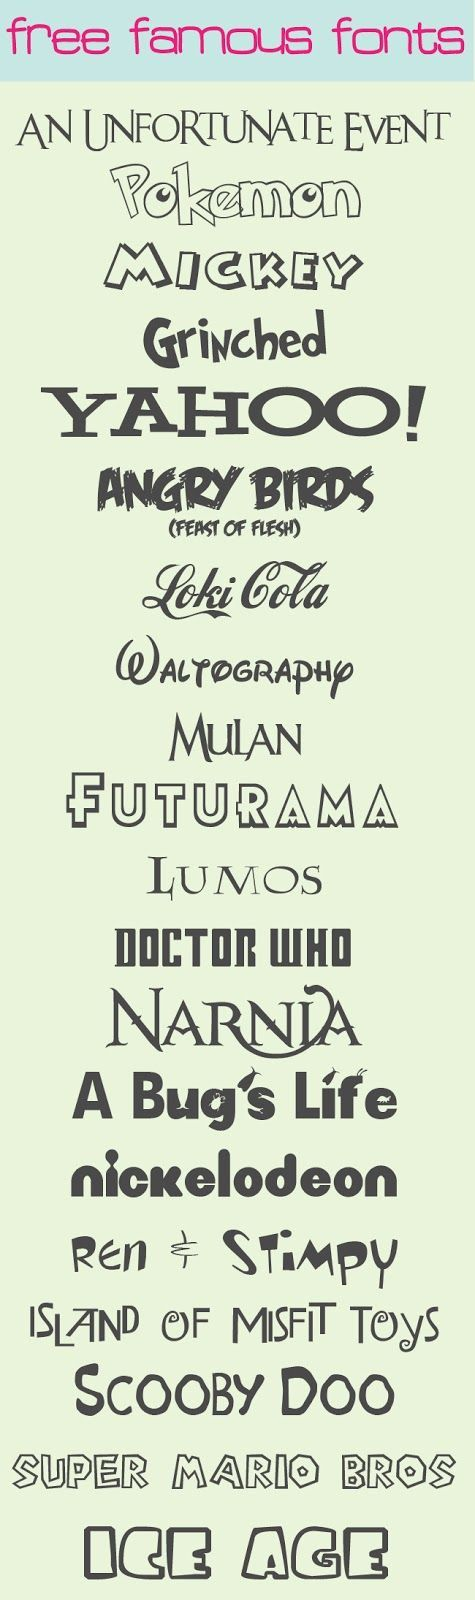 Free Famous Fonts - some great Disney fonts in here!